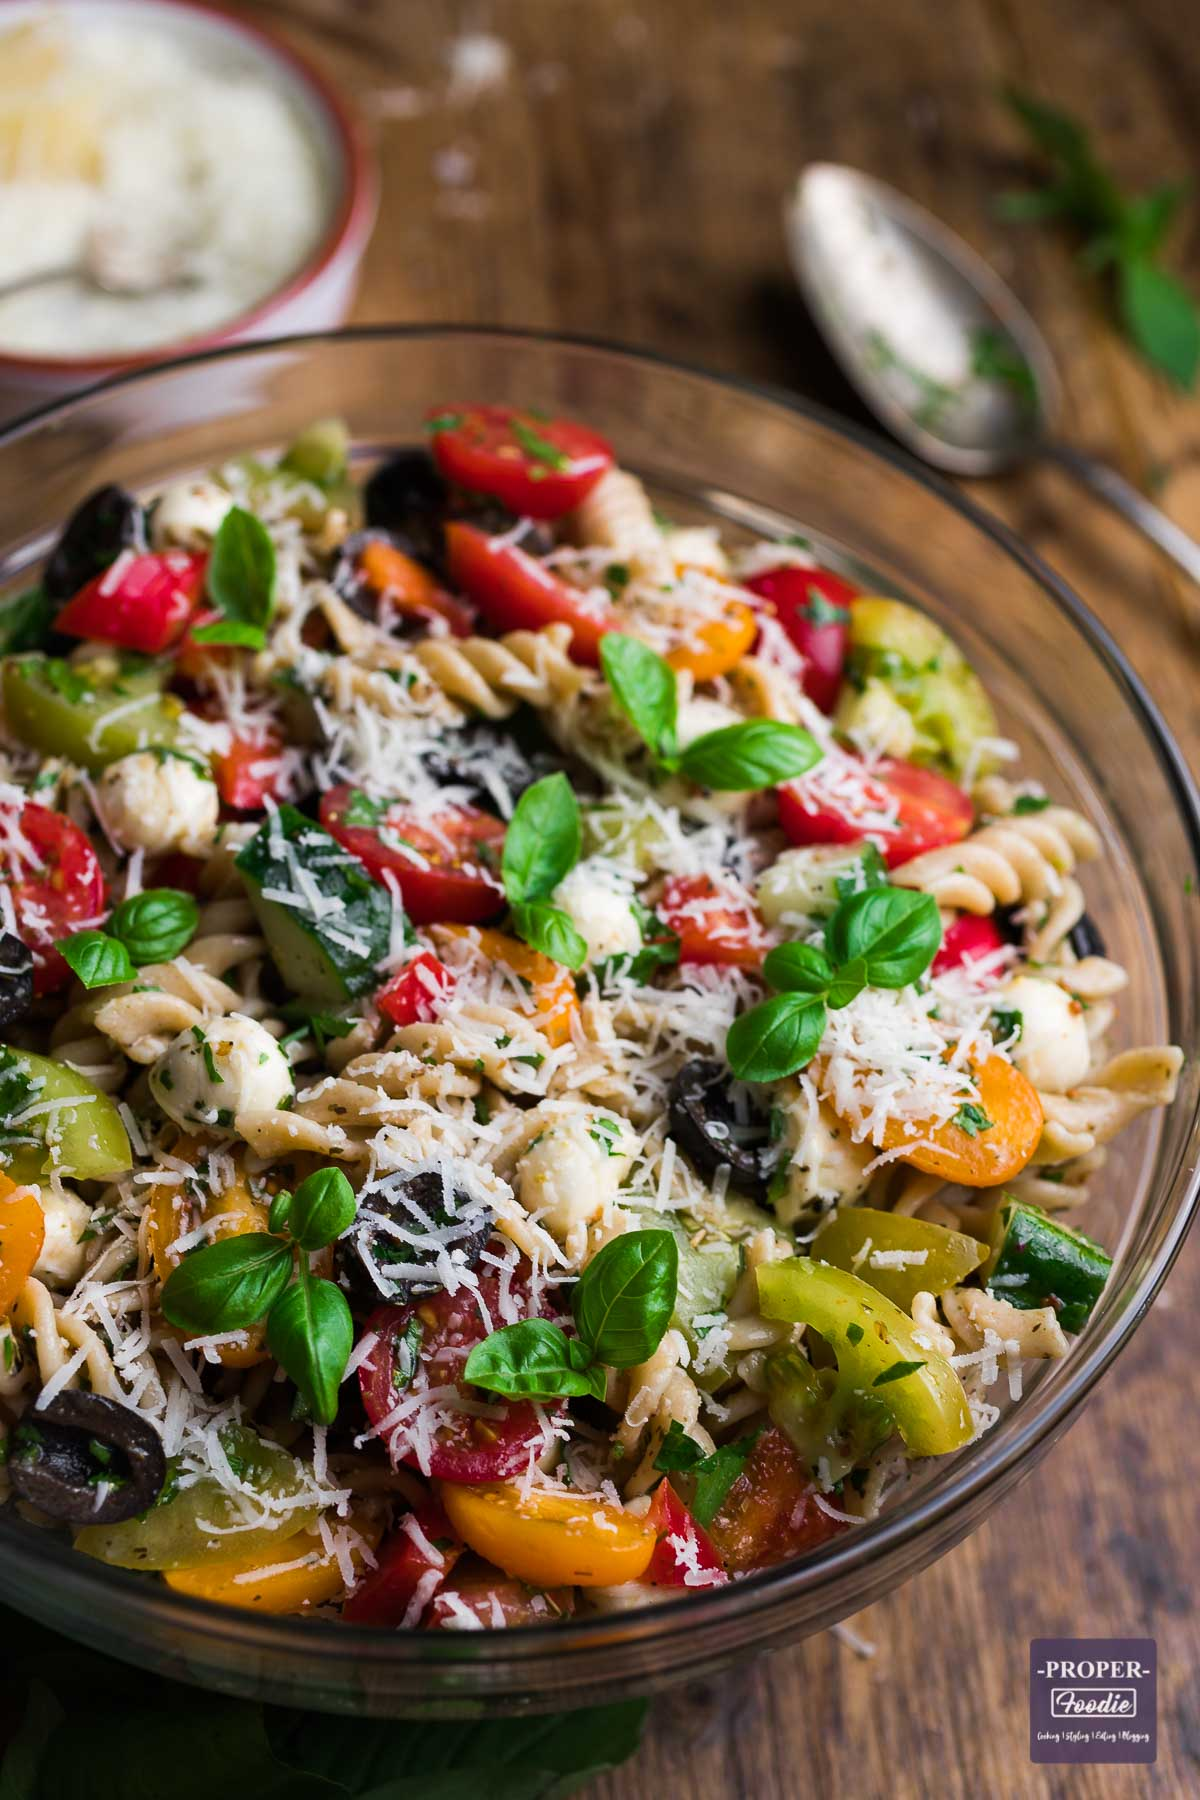 Large bowl filled with Italian Pasta Salad with a serving spoon and small bowl of grated pecorino cheese in the background.